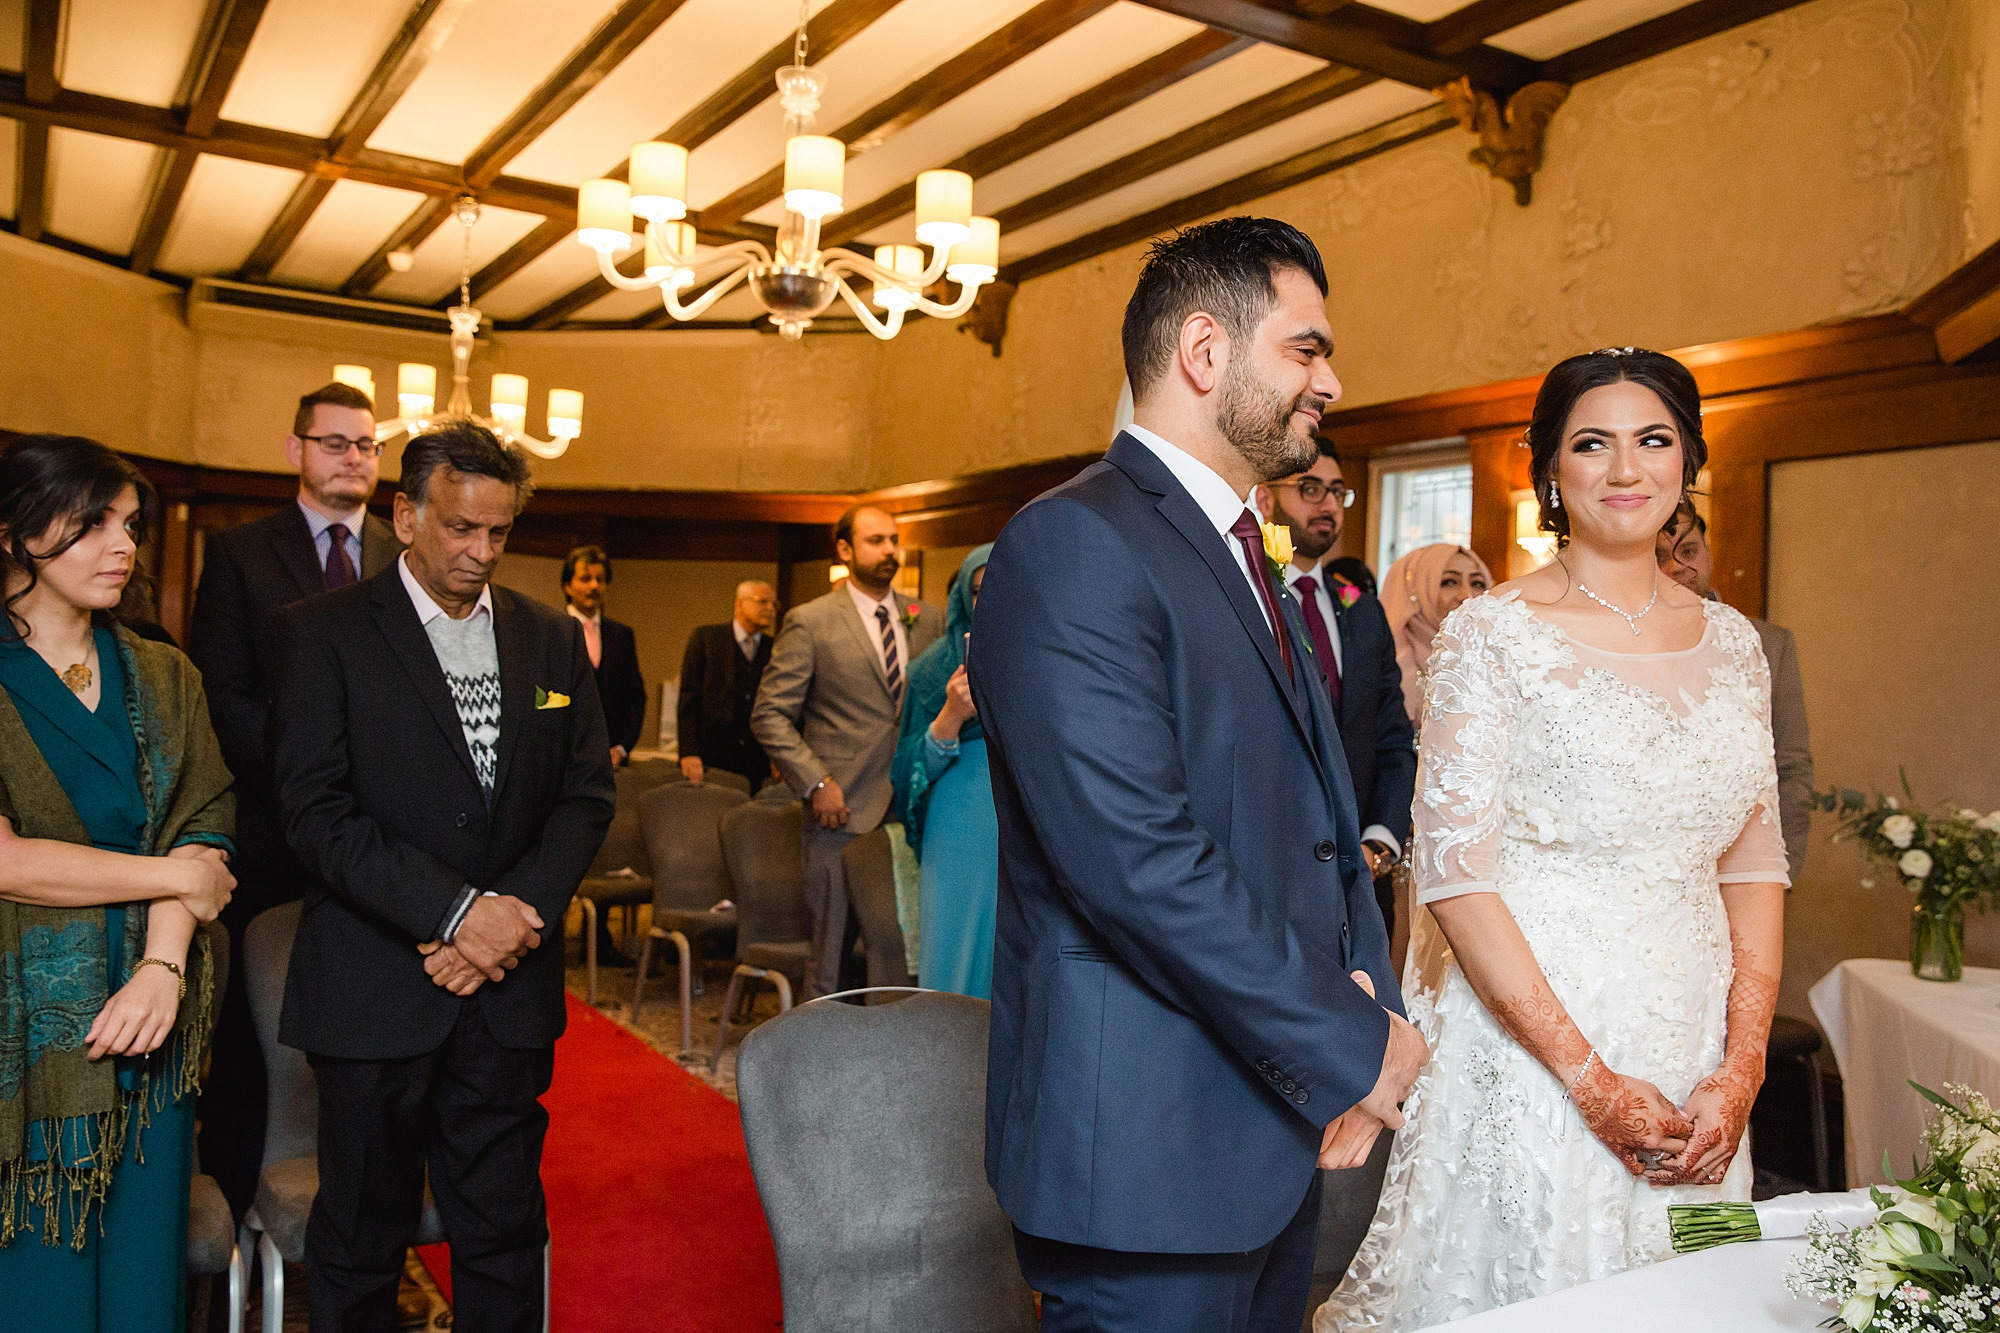 Richmond Hill Hotel wedding photography bride and groom together at ceremony